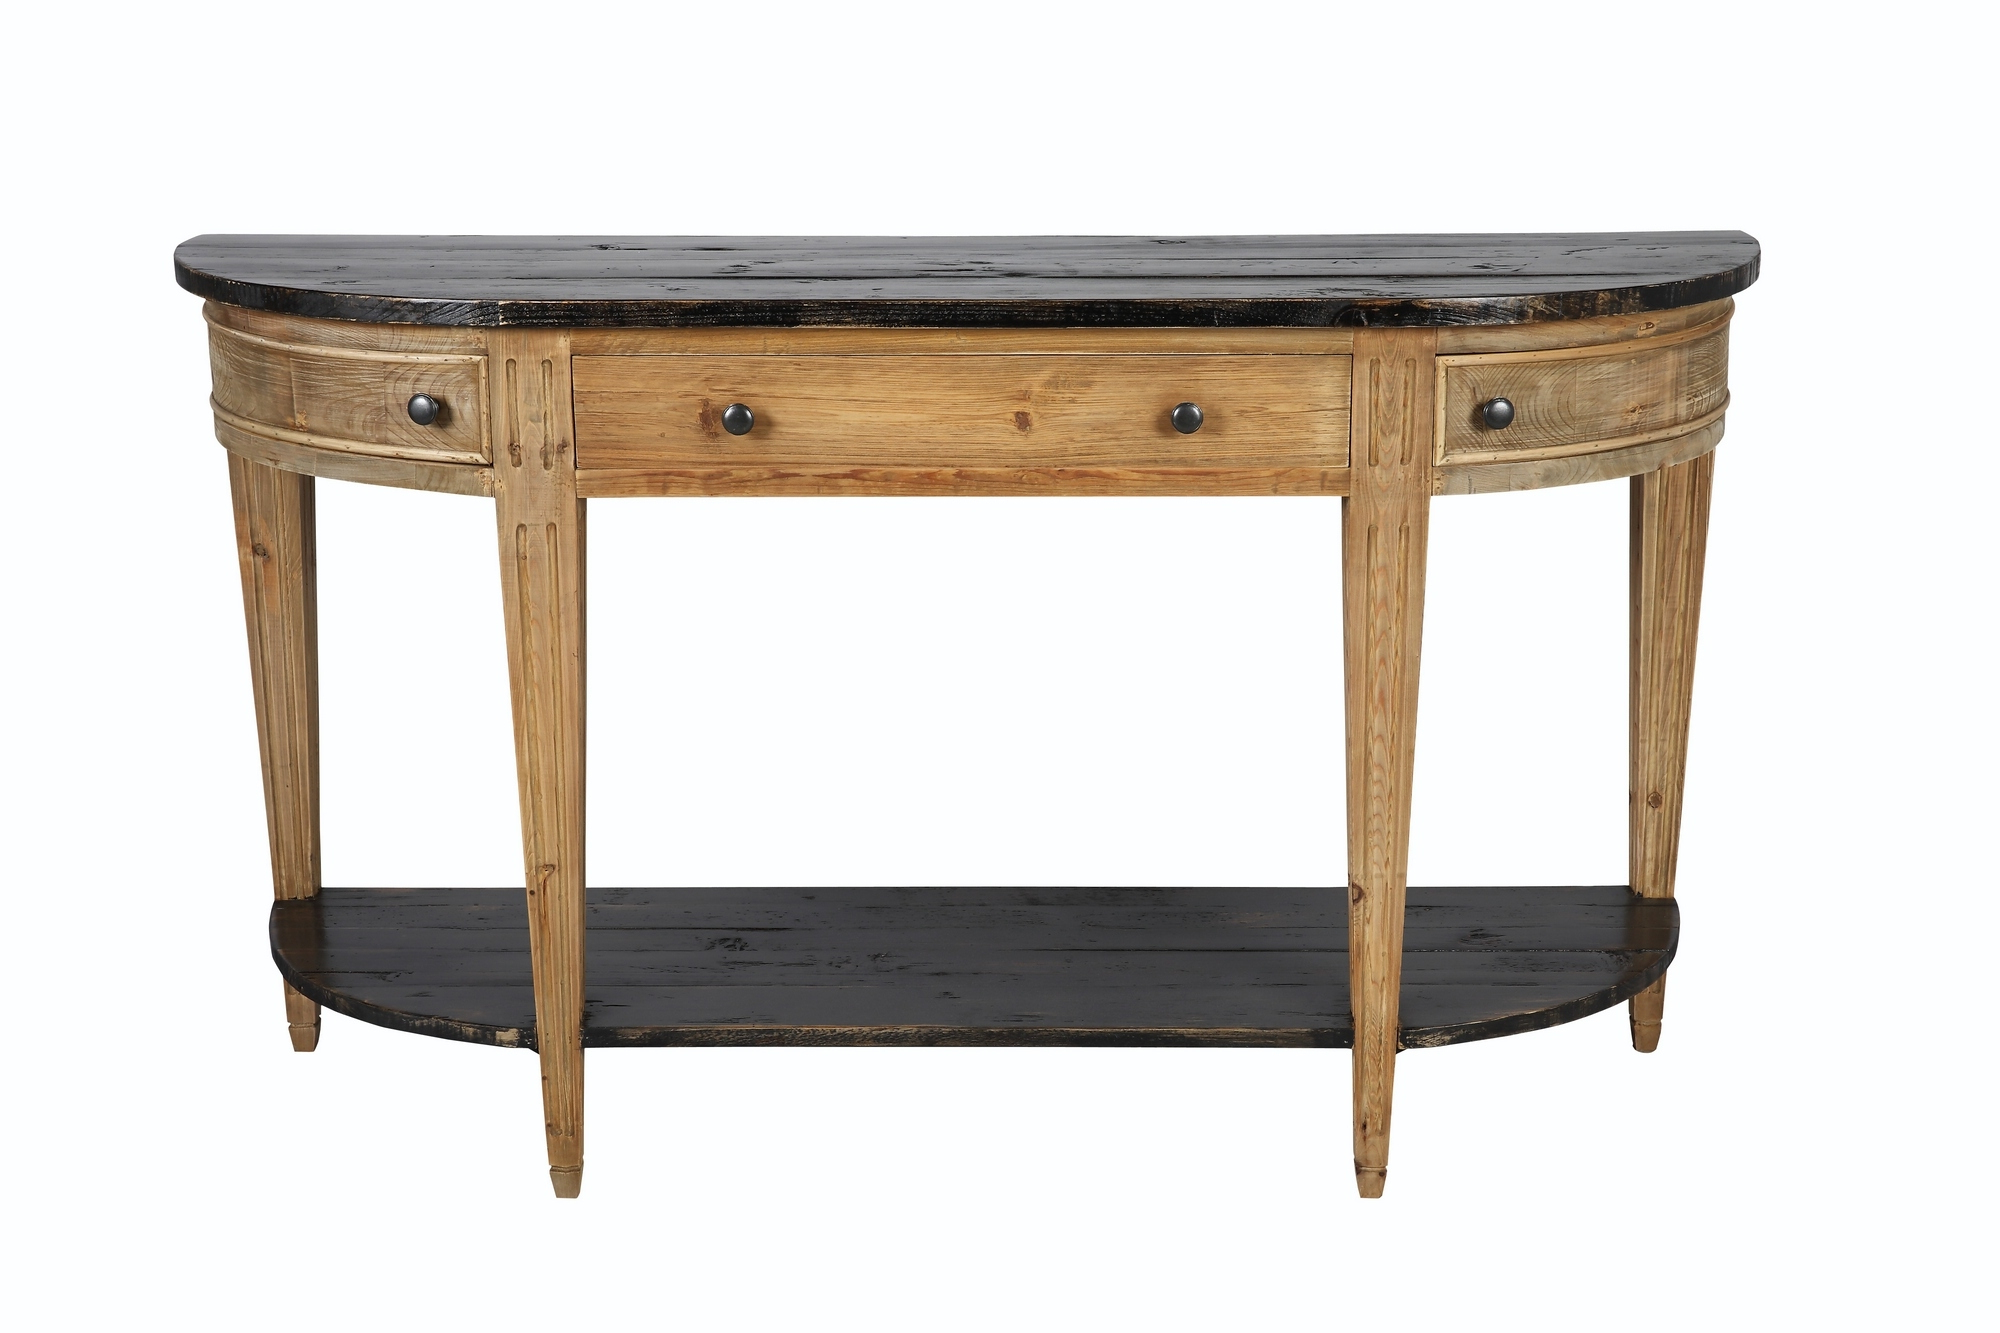 Juliet Console Table (Kj 1002 24)Moes Home Regarding Balboa Carved Console Tables (View 14 of 20)